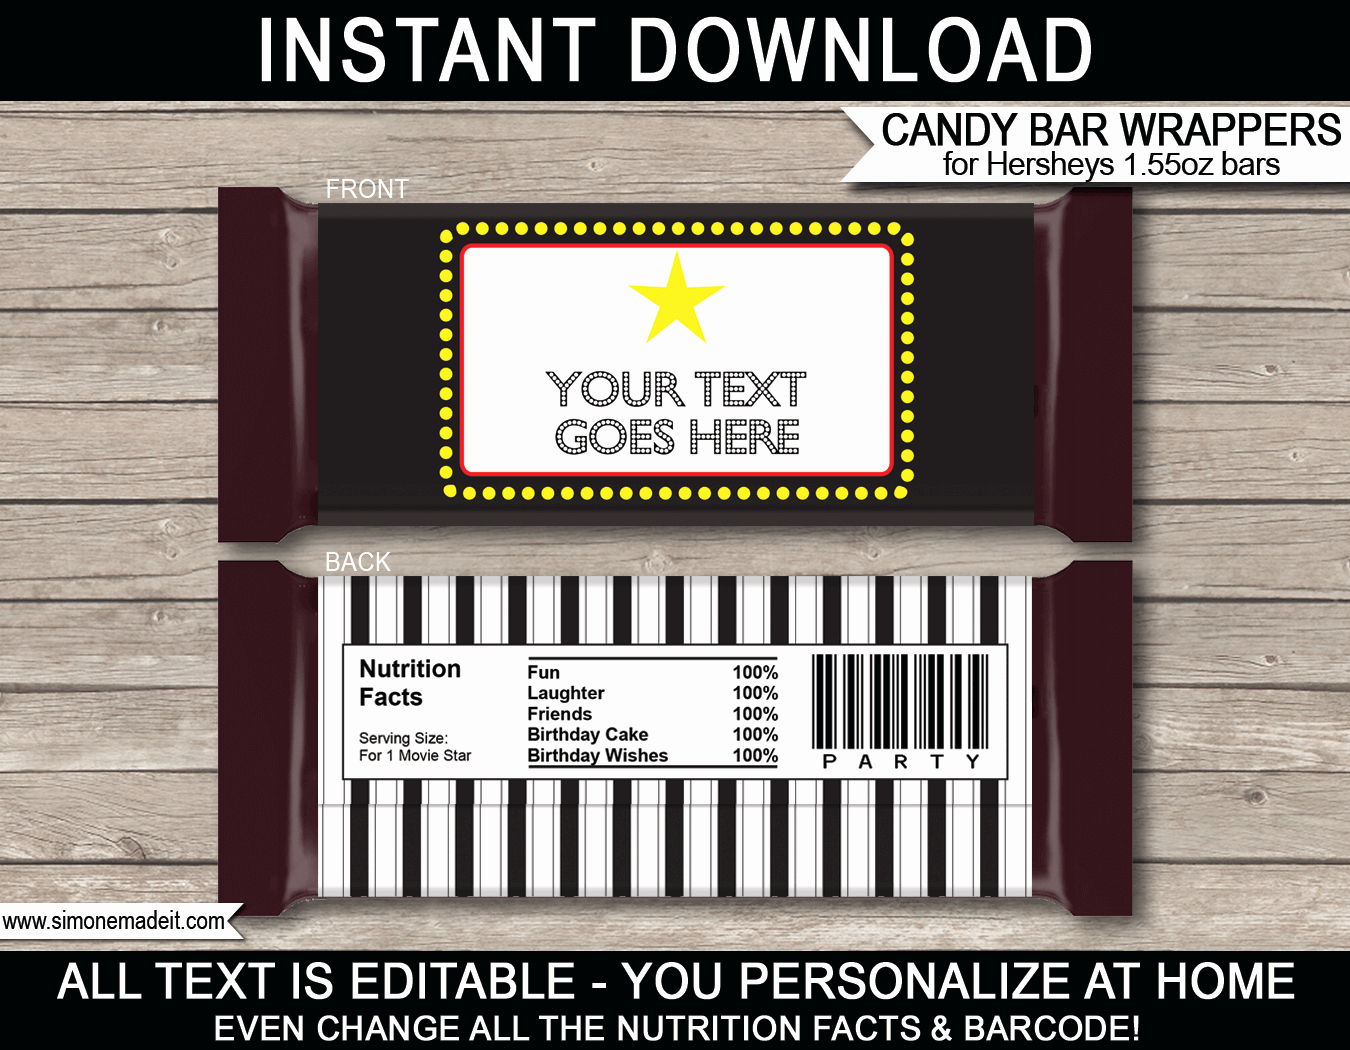 Hershey Bar Wrapper Dimensions Luxury Hershey Candy Bar Wrapper Template Free Download Aashe